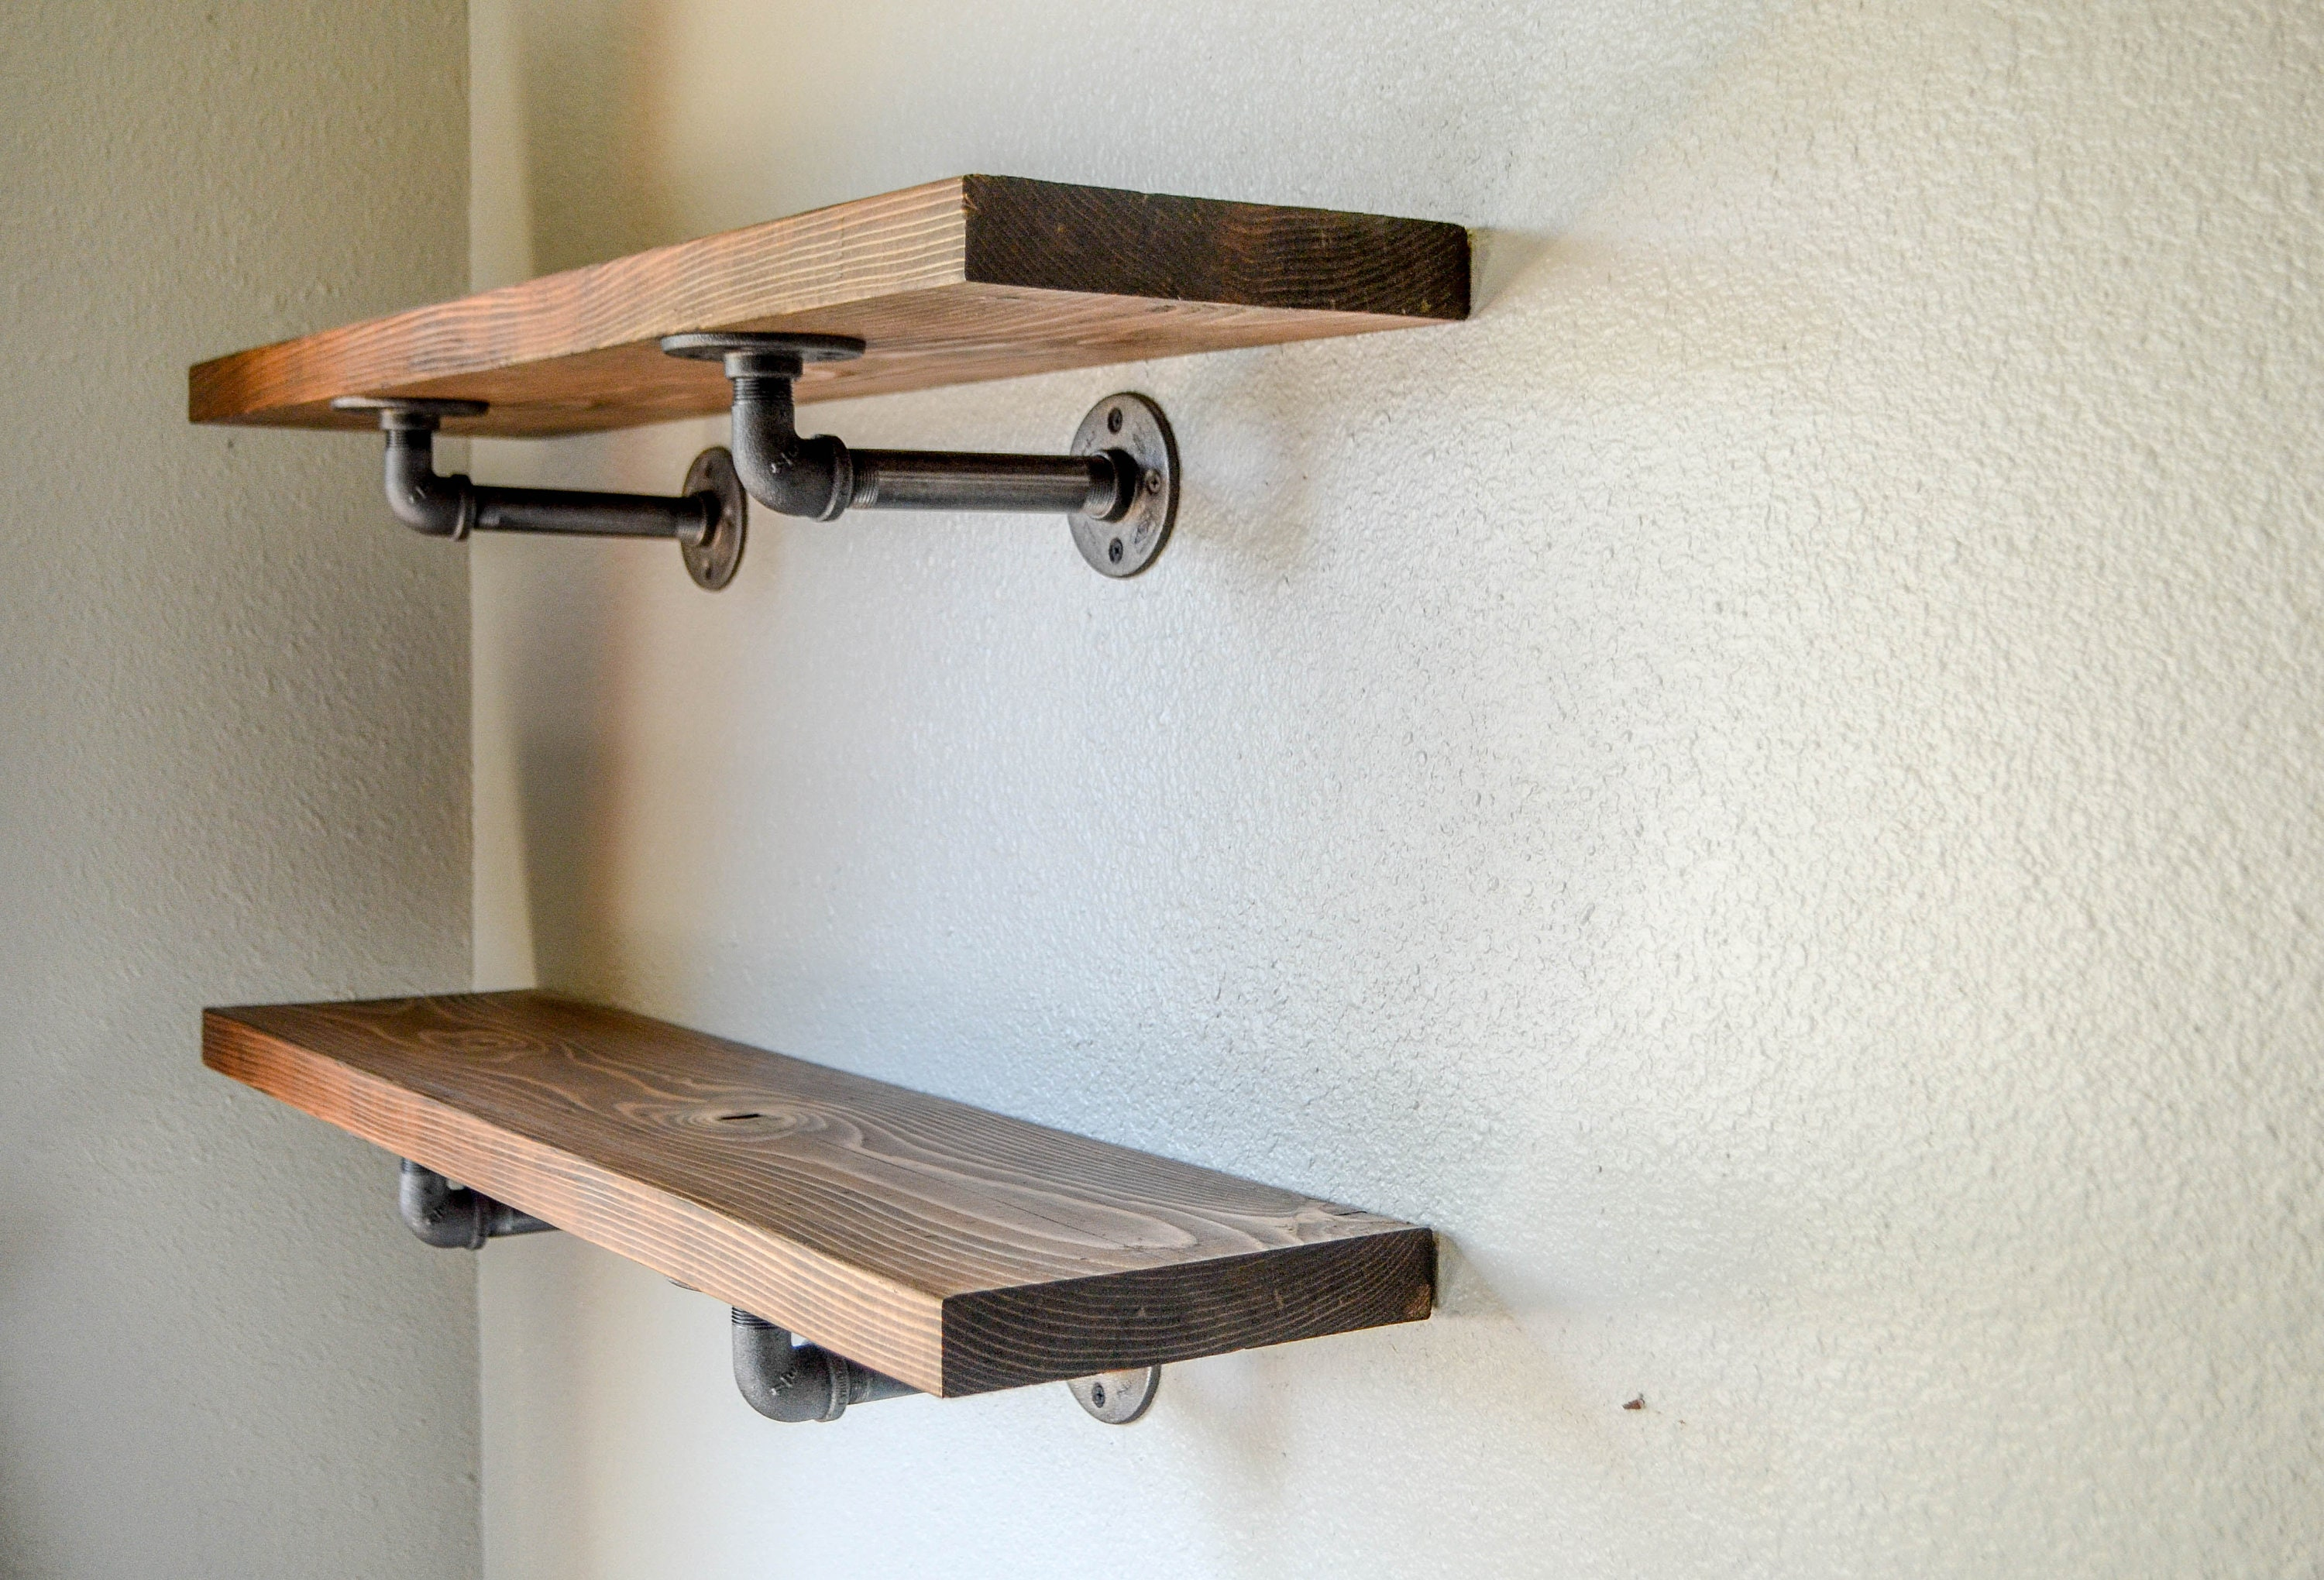 Industrial Pipe Shelving 48x7 5 Pipe Shelf Open Shelving Farmhouse Shelving Farmhouse Decor Valentine S Day Kitchen Shelving Dining